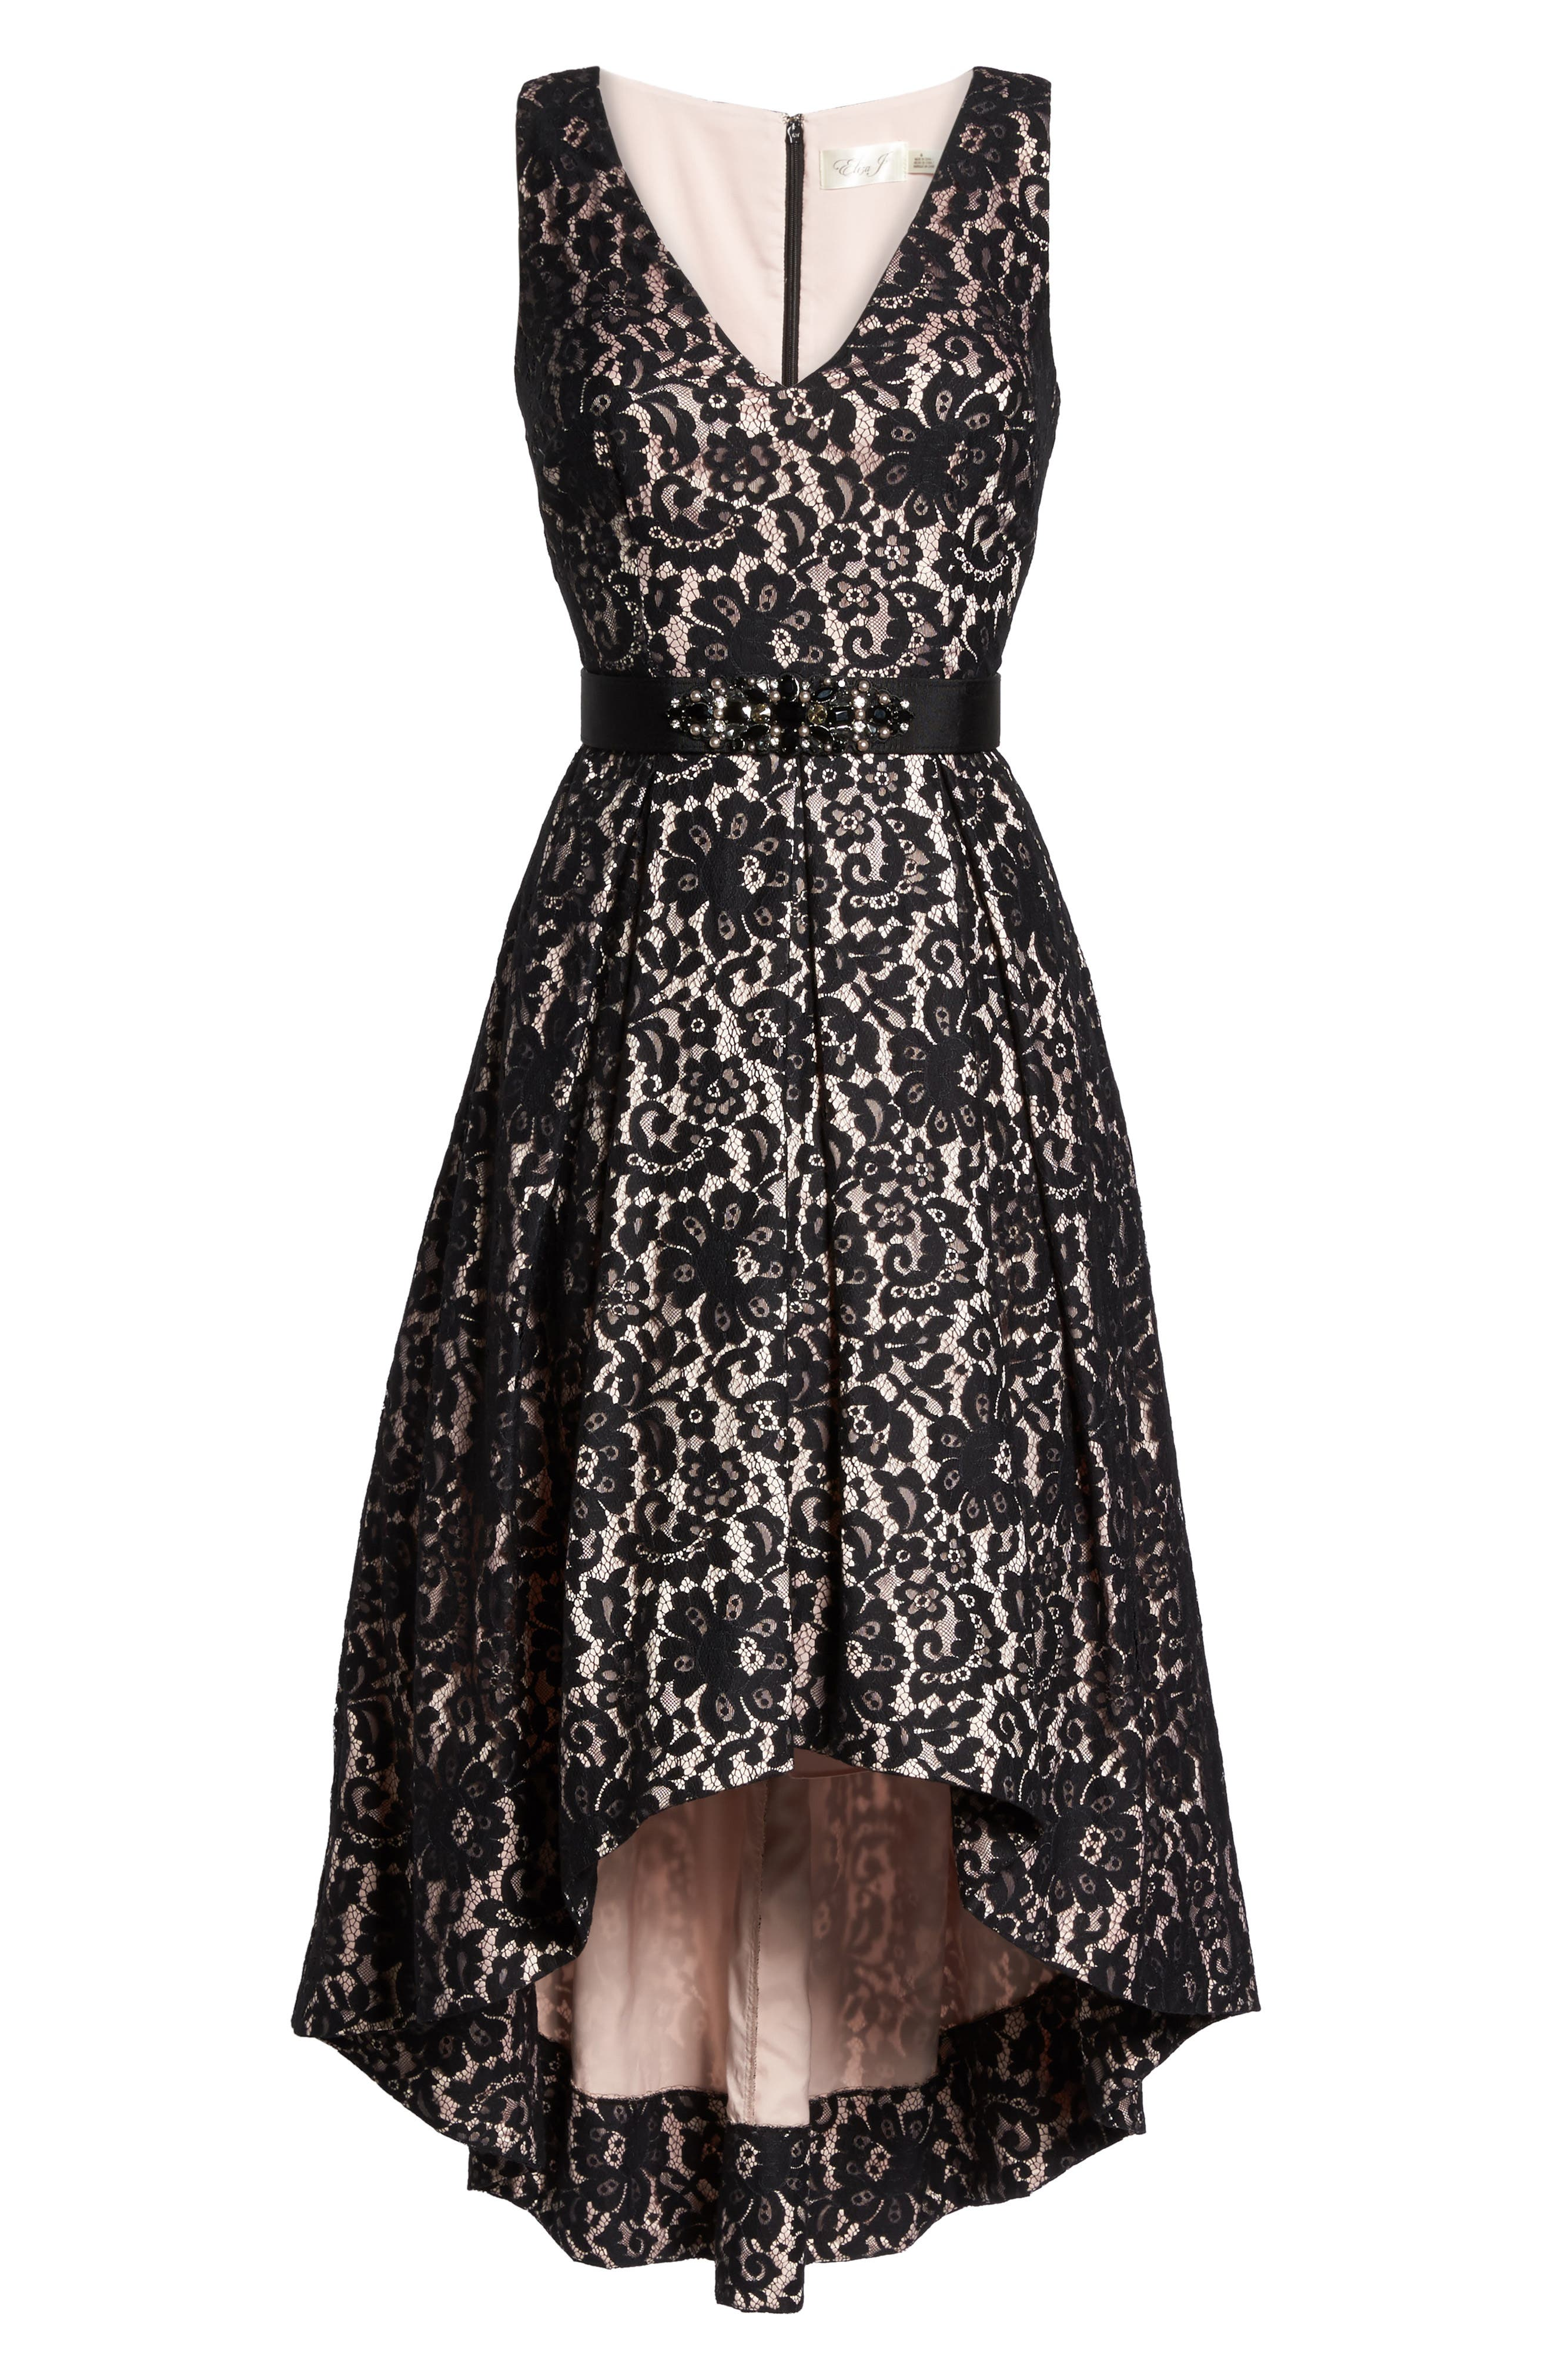 Belted Lace High/Low Dress,                             Alternate thumbnail 6, color,                             Black/ Blush